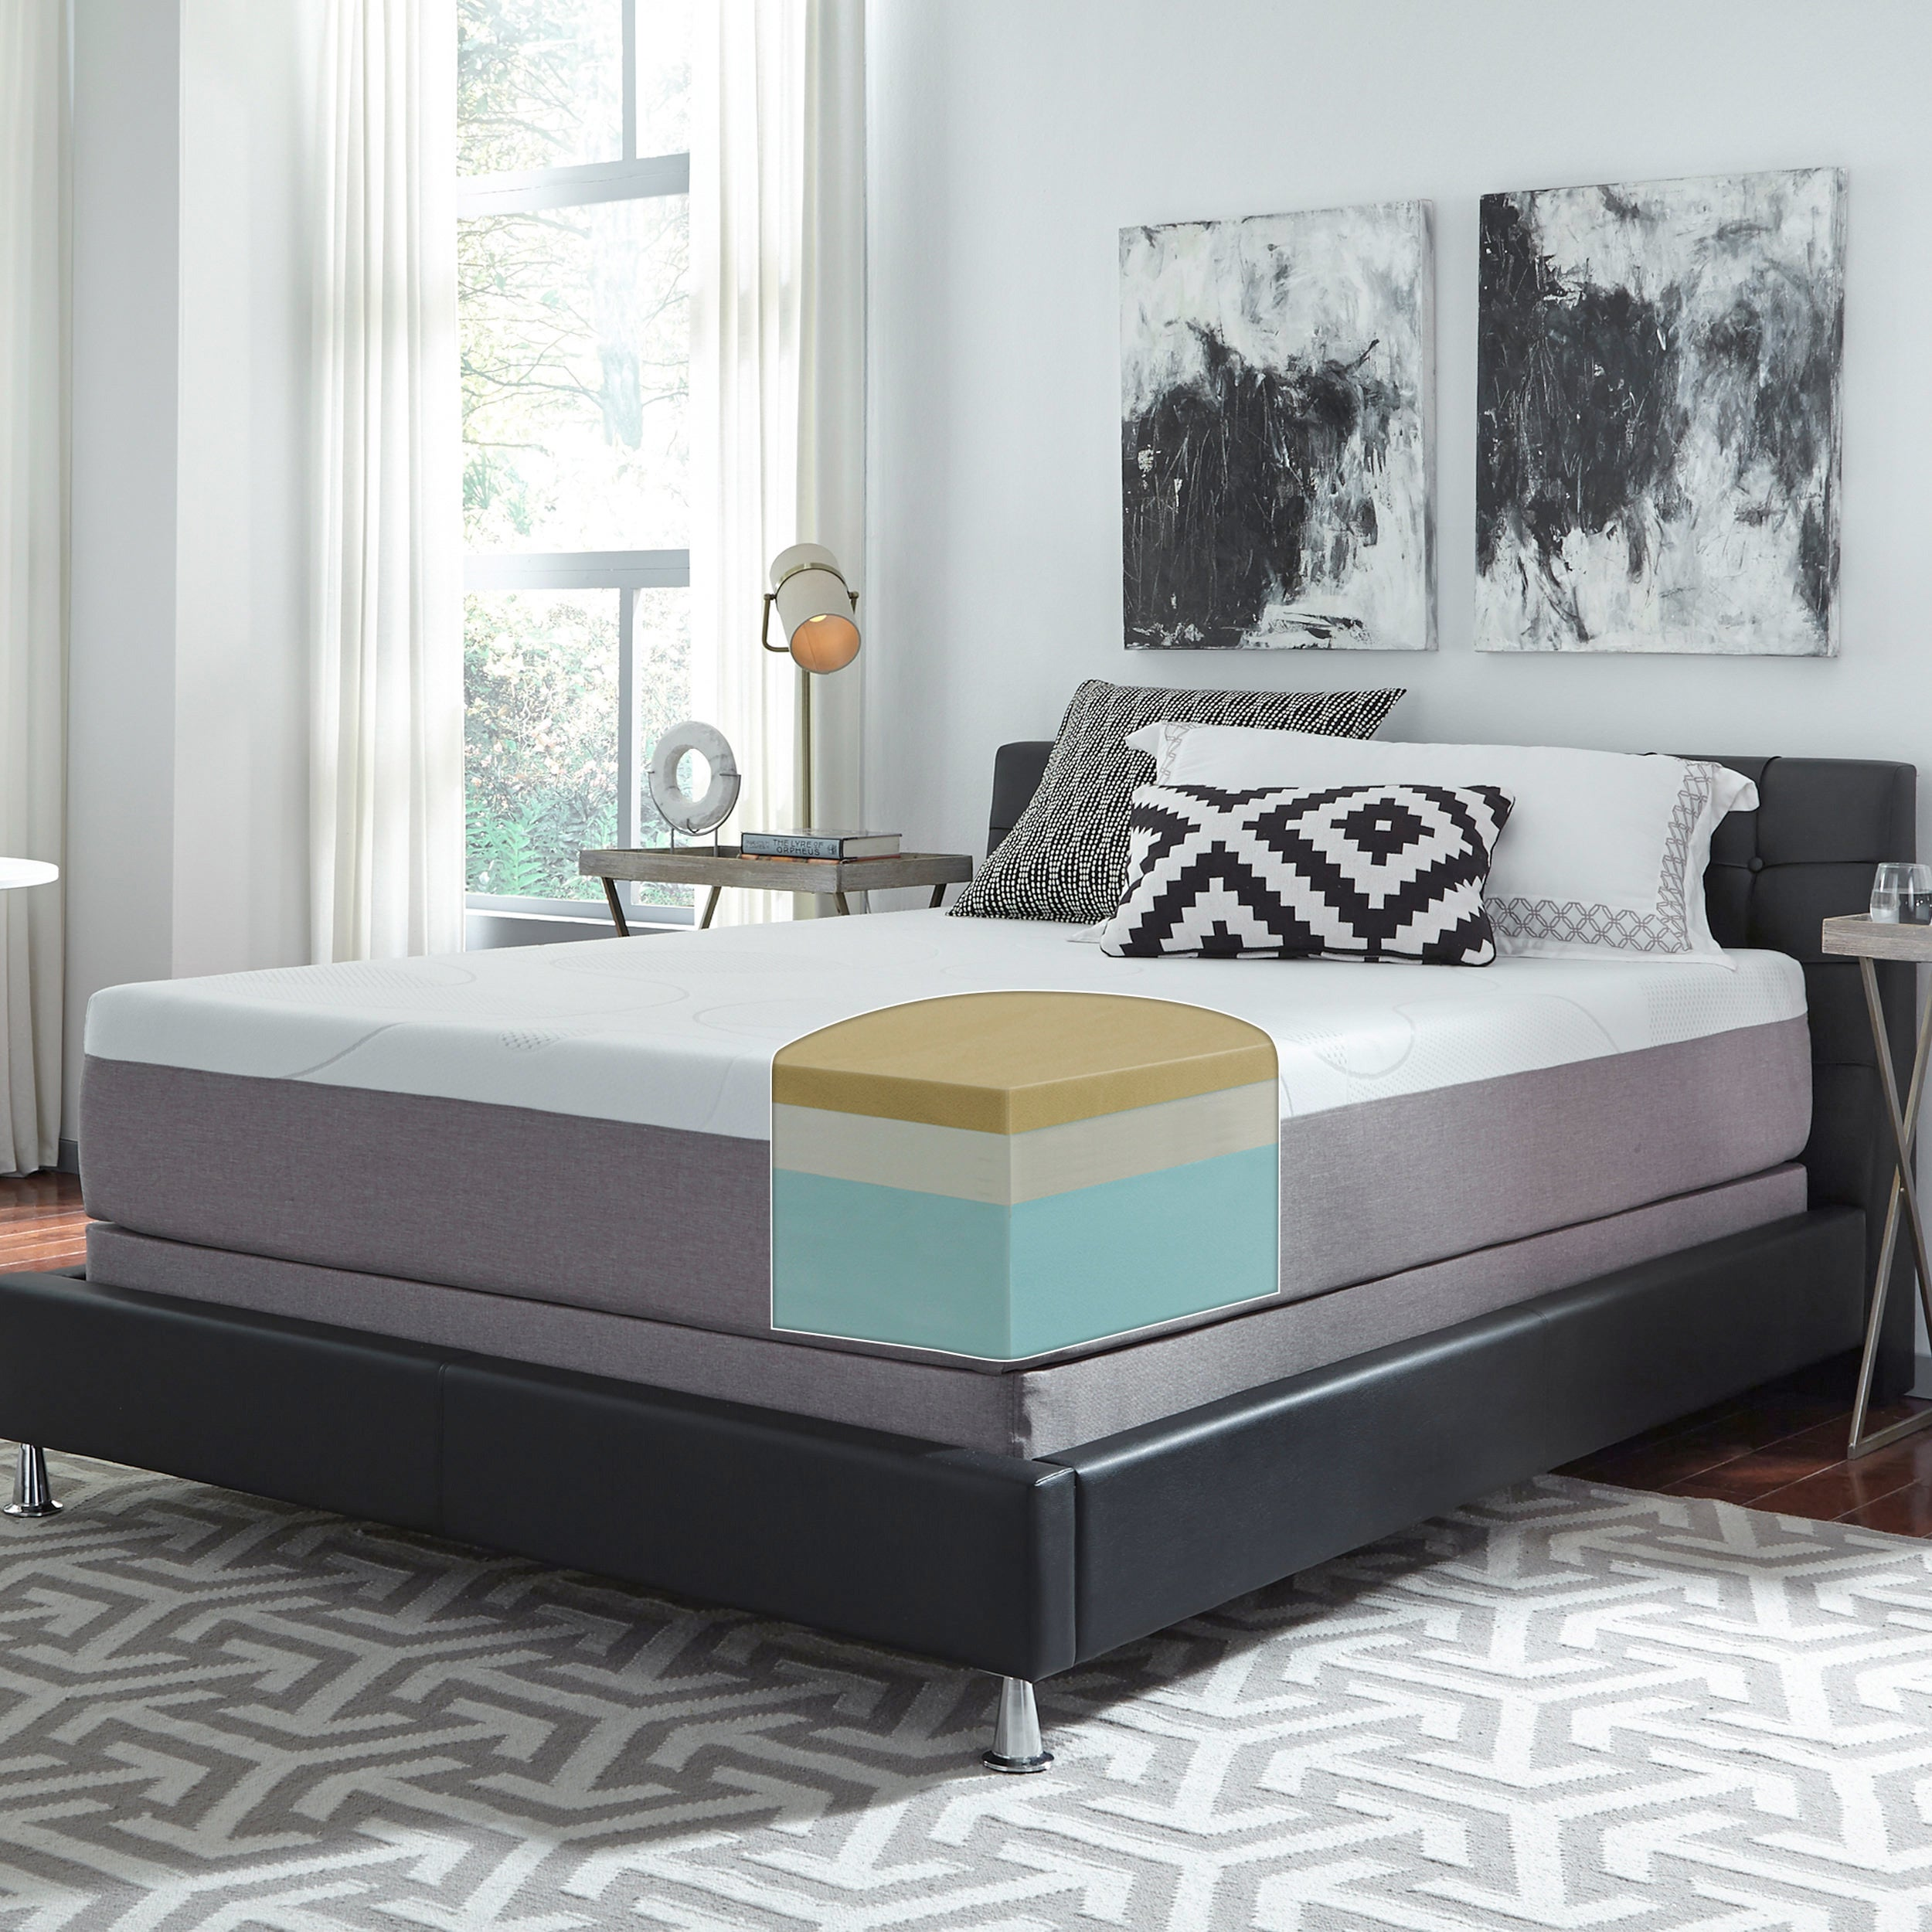 slumber mattress in a box. Slumber Solutions Choose Your Comfort Memory Foam 12-inch King-size Mattress Set - Free Shipping Today Overstock 25697472 In A Box